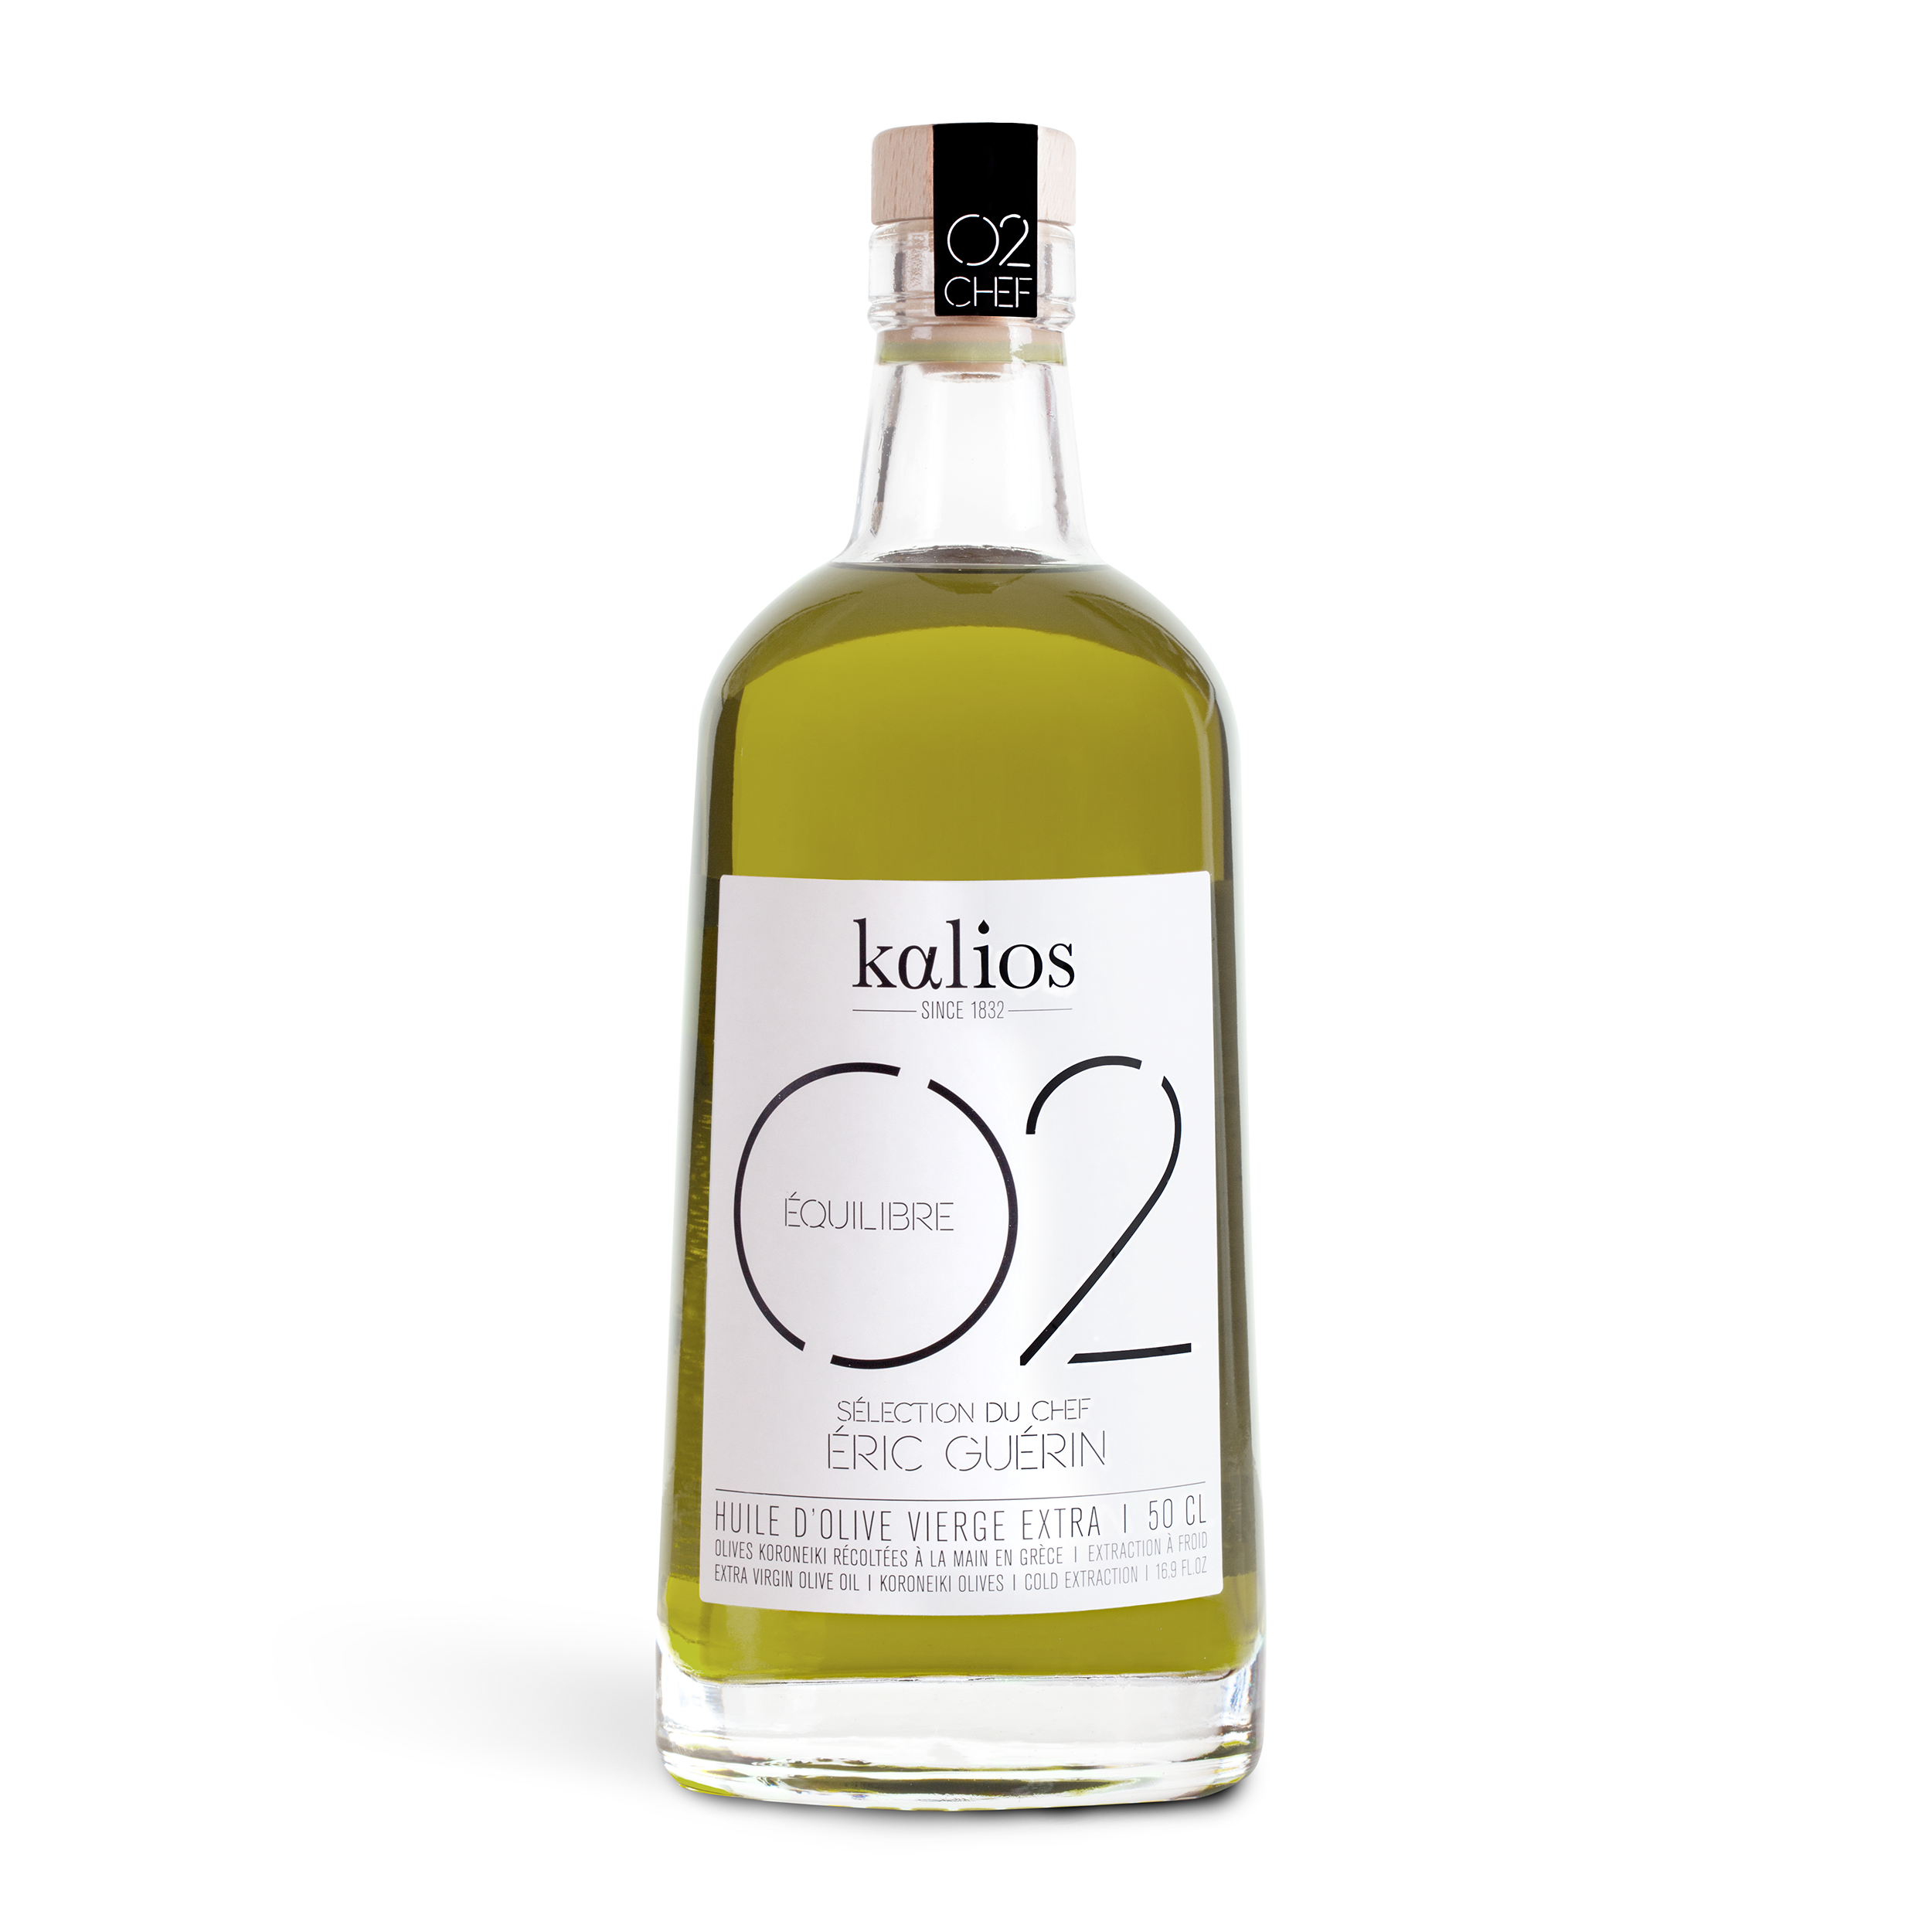 Huile d'olive 02 Equilibre Chef Eric Guérin, Kalios (50 cl)